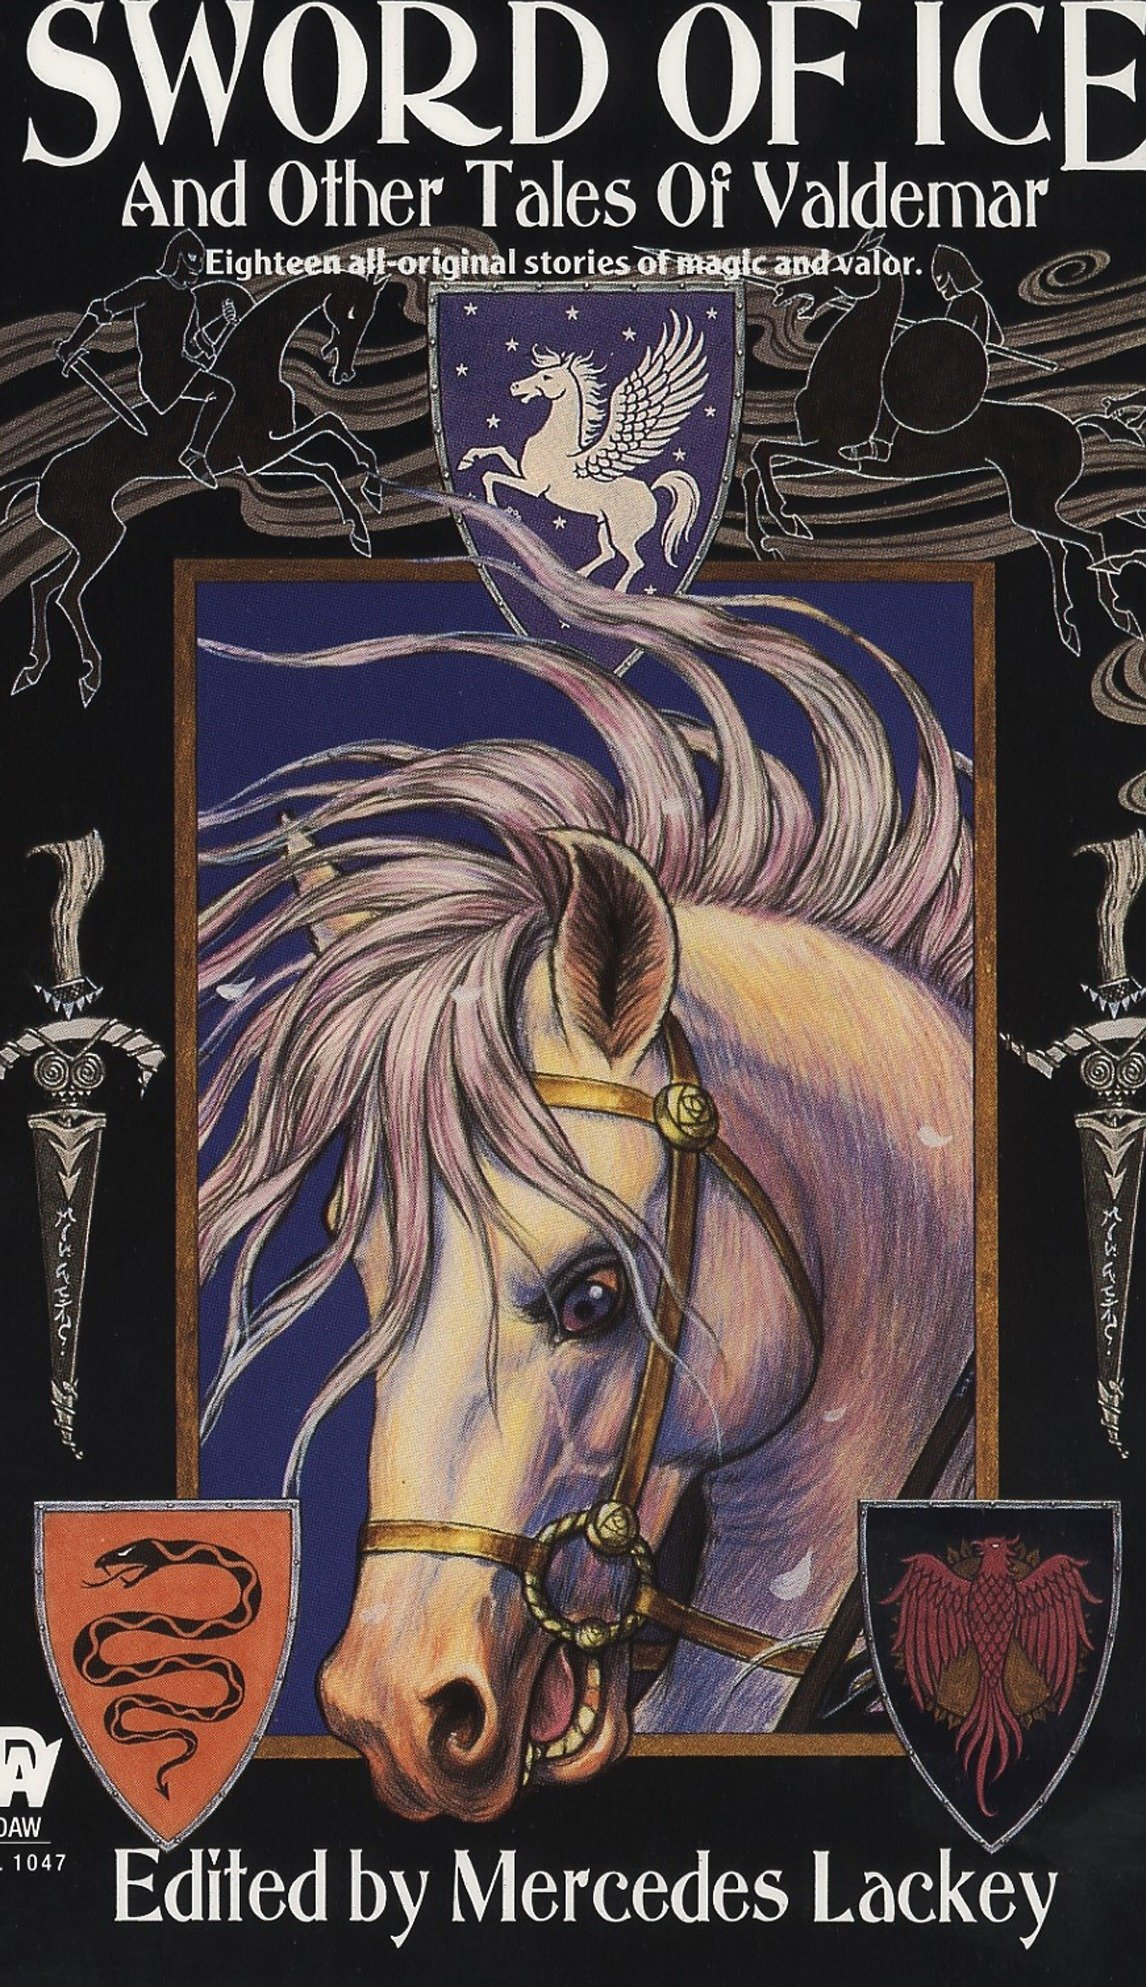 Sword of Ice: And Other Tales of Valdemar: Mercedes Lackey, Jody A. Lee:  9780886777203: Amazon.com: Books